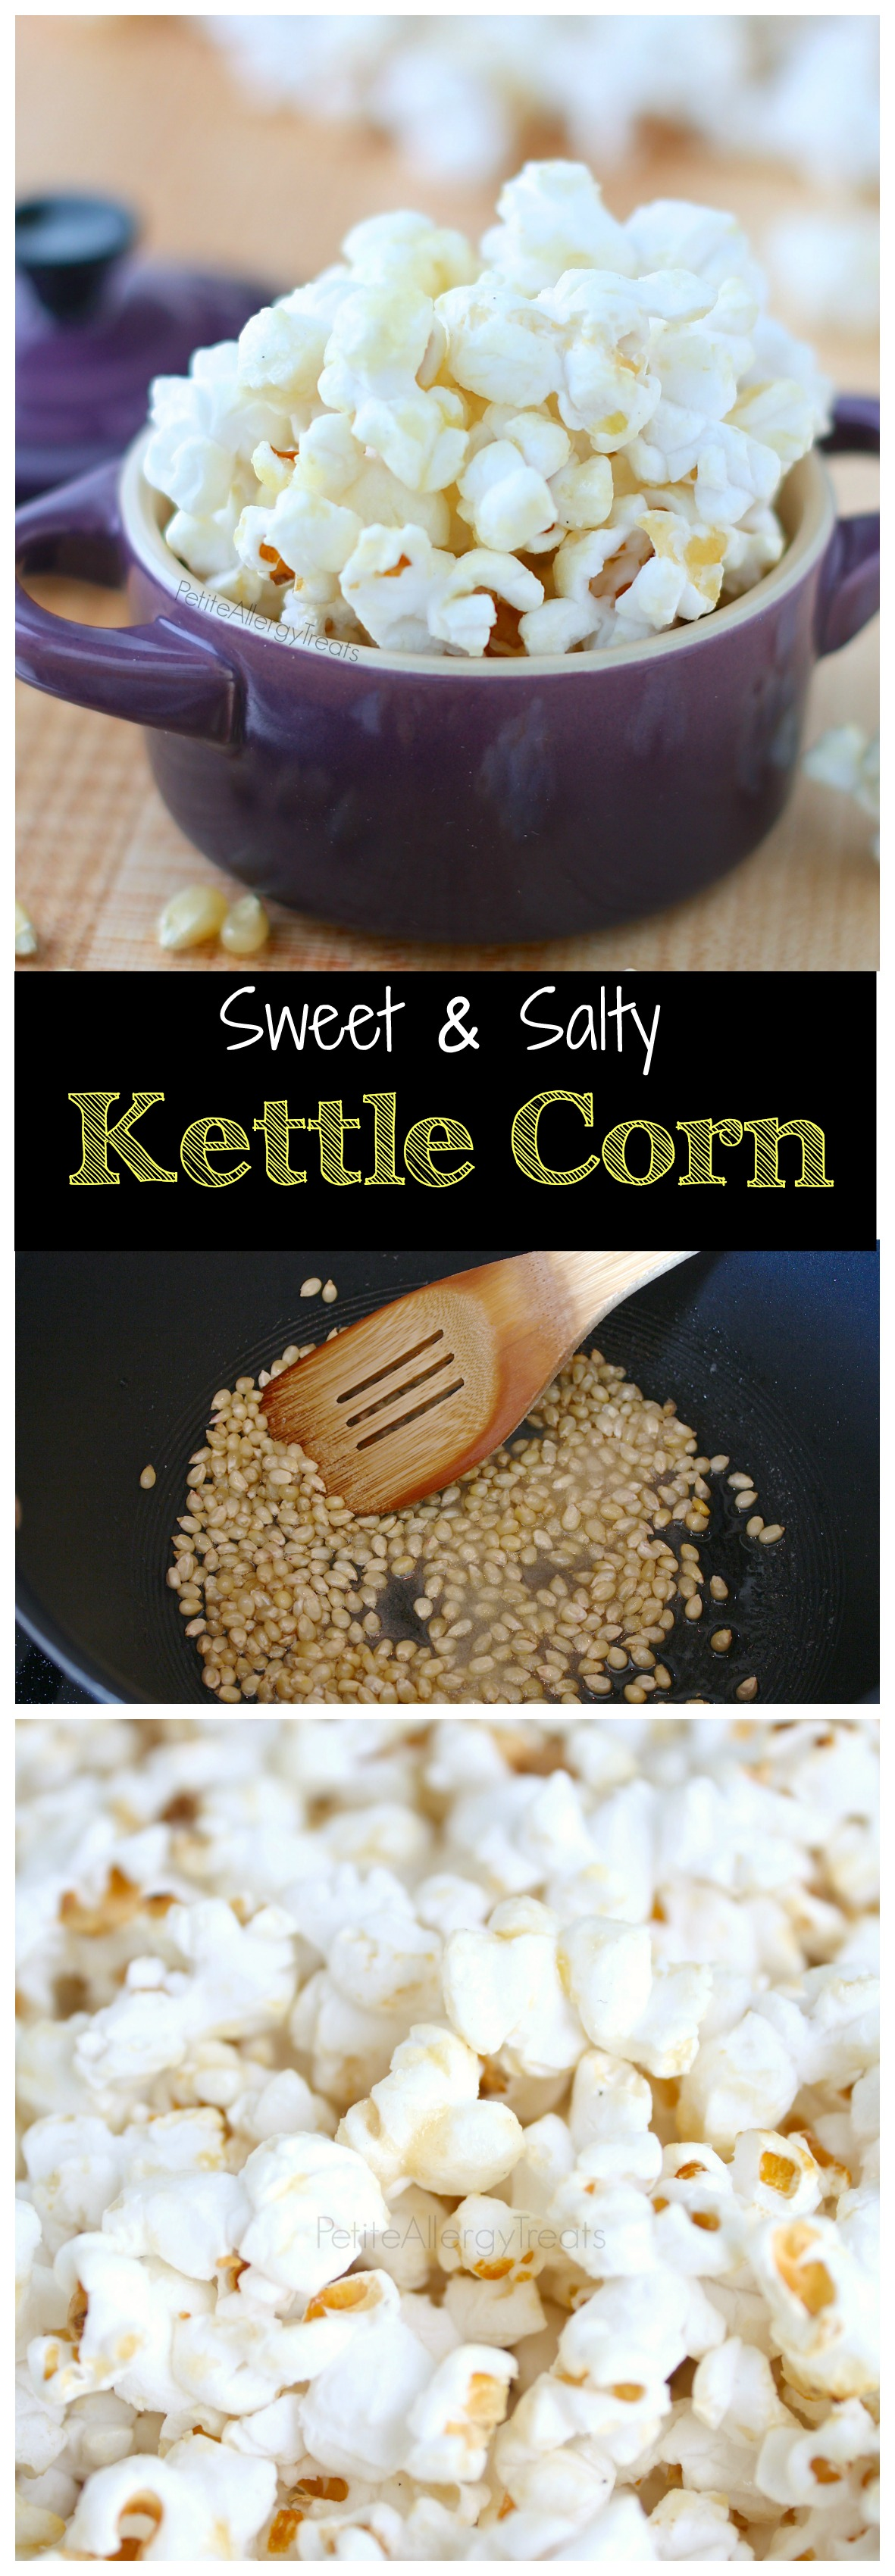 Easy Homemade Kettle Corn- Sweet and salty make this gluten free vegan snack irresistible.